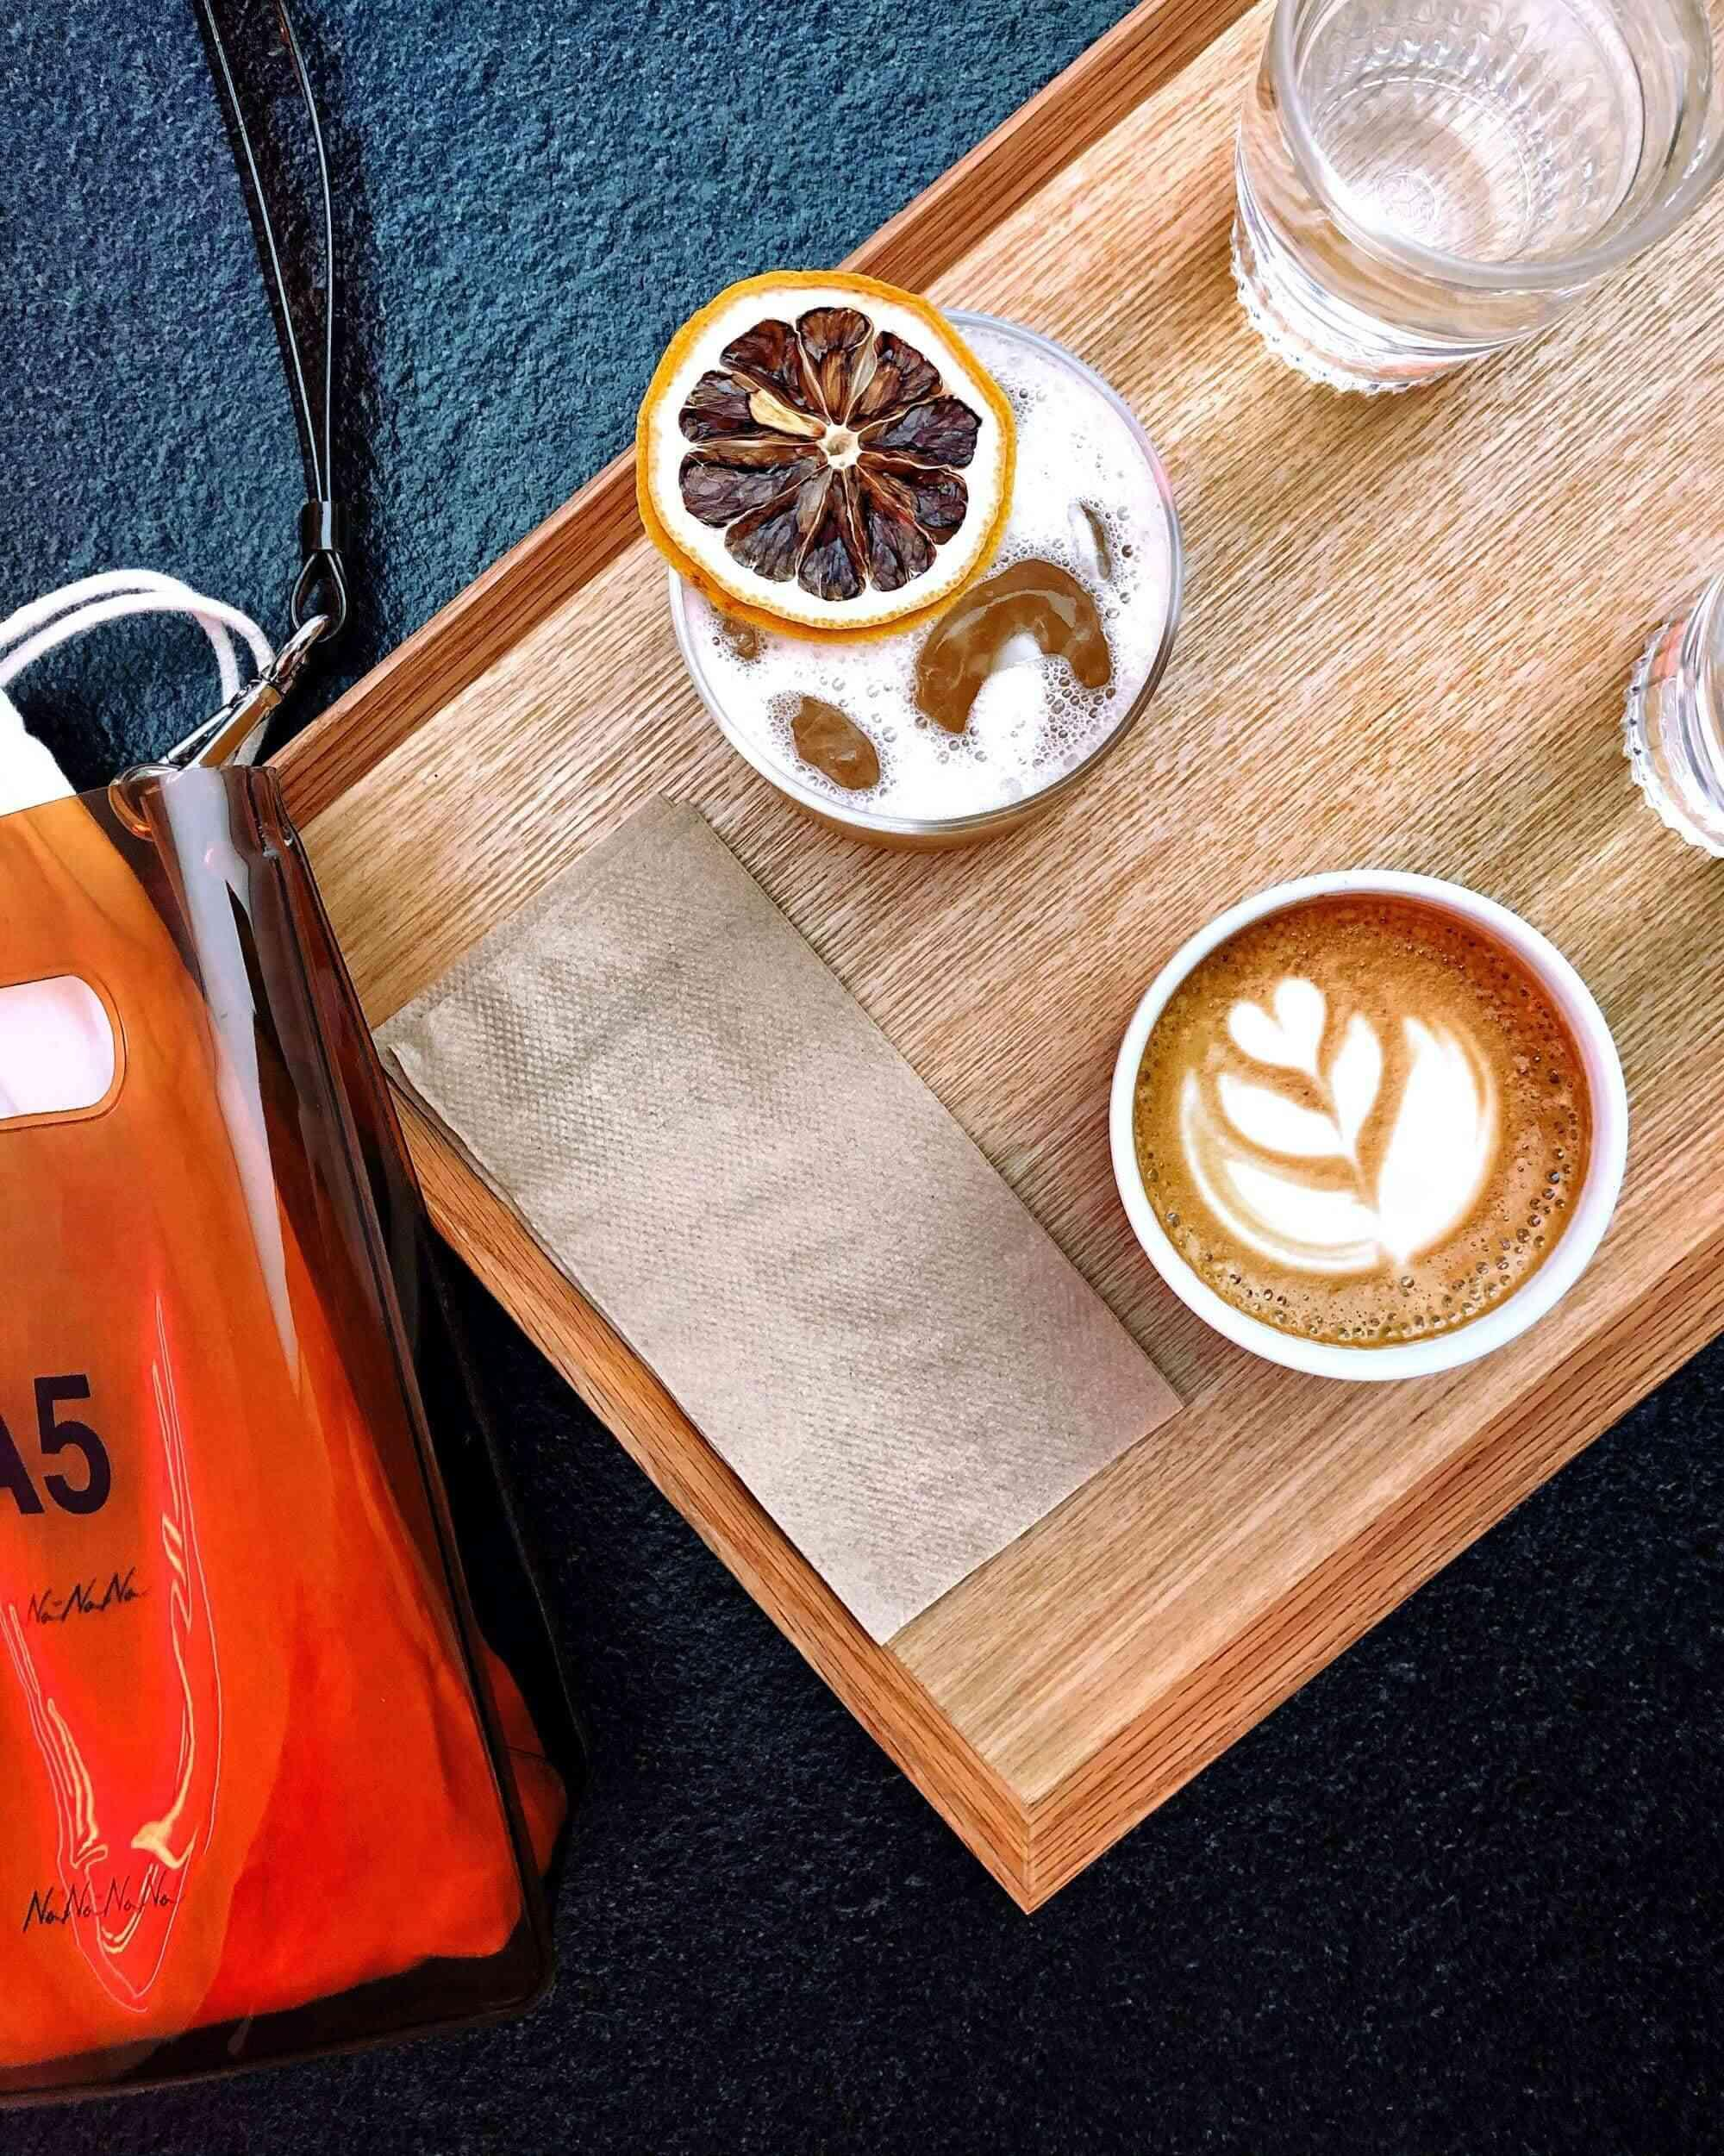 Cafe beverages on a tray